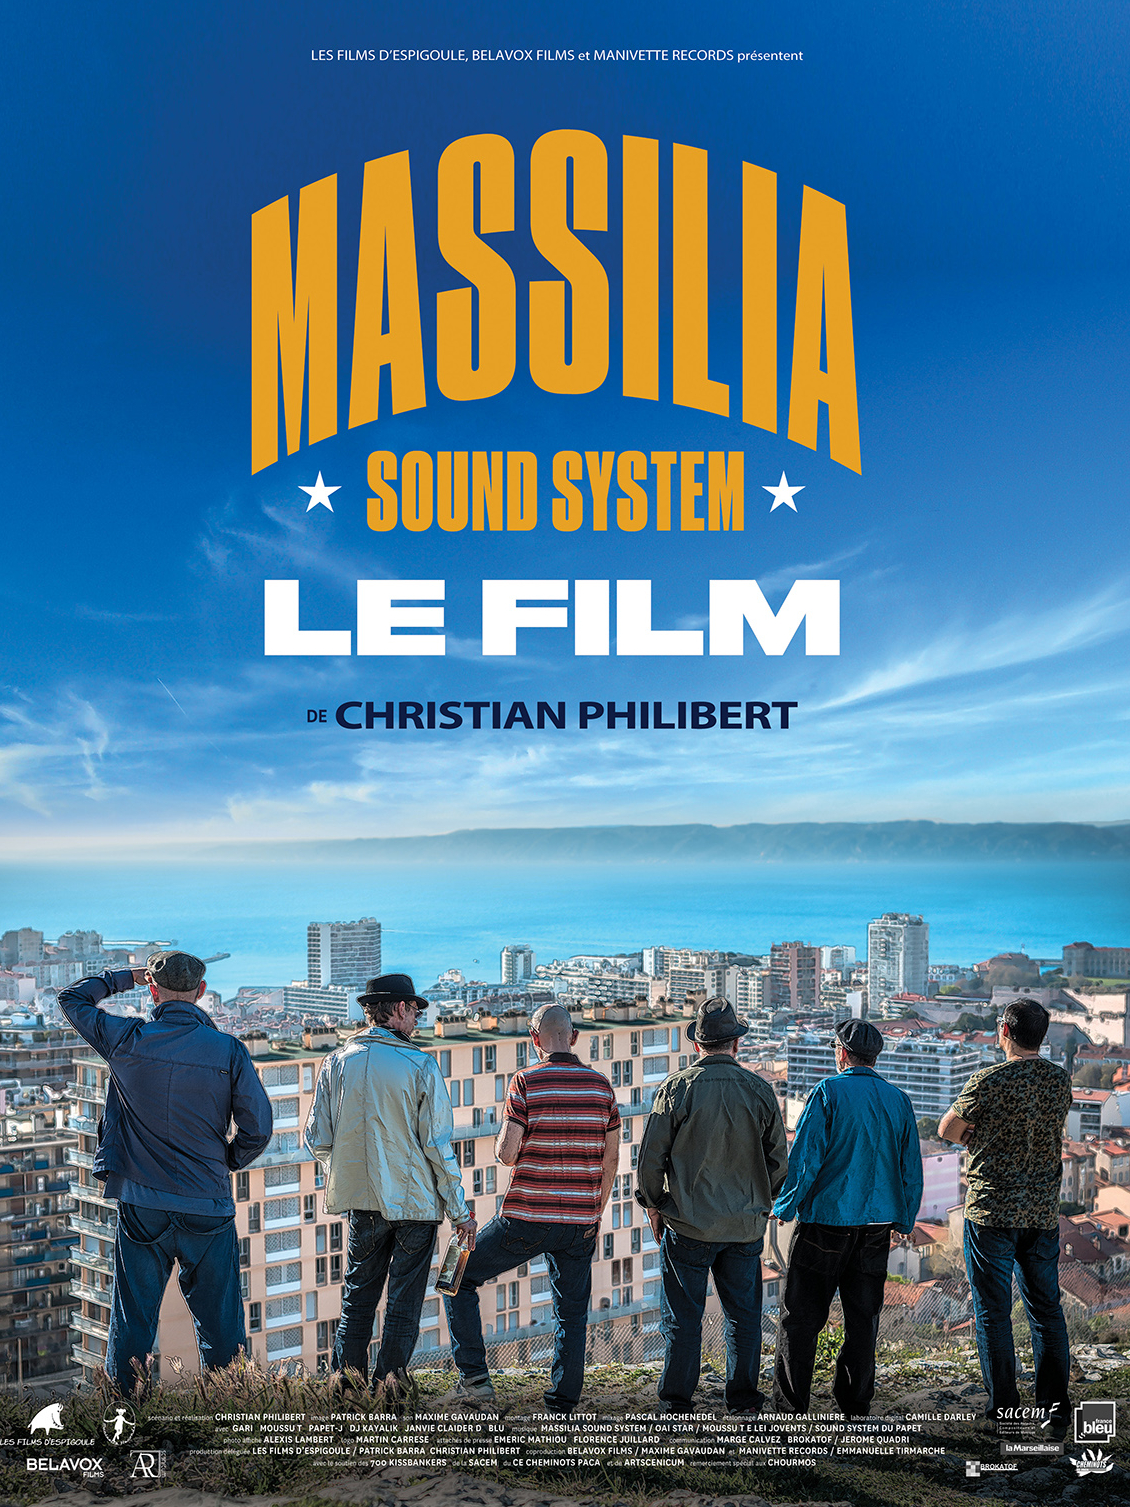 Massilia Sound System - Le film | Philibert, Christian (Réalisateur)